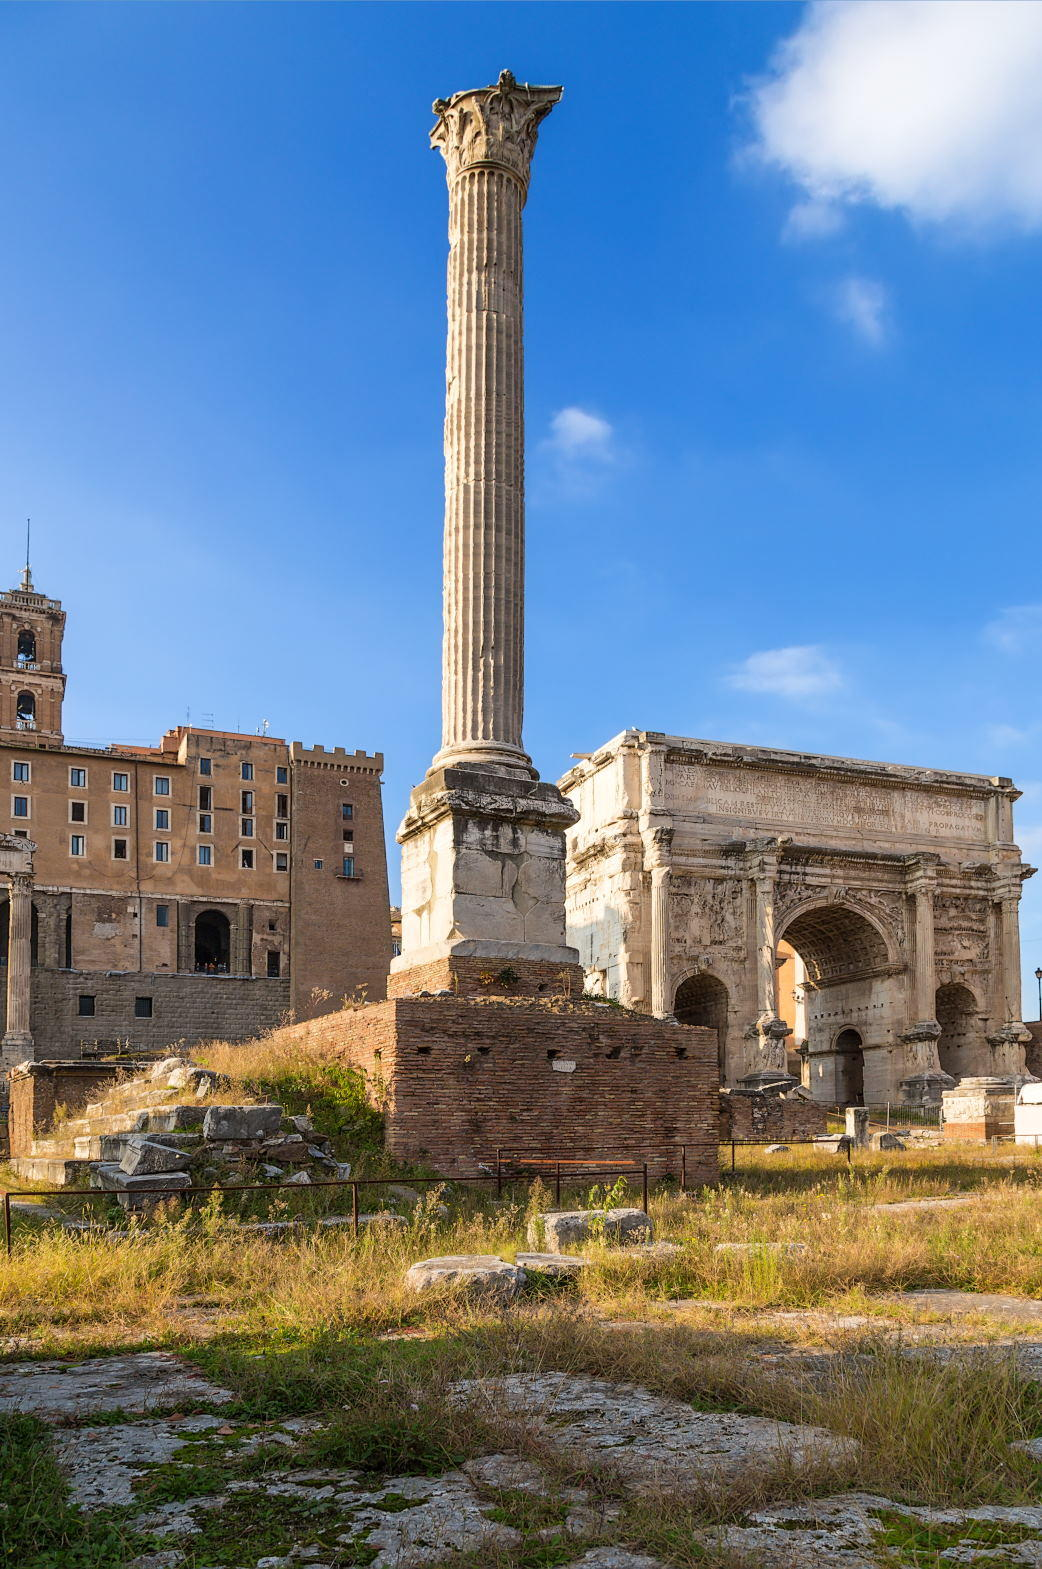 The Roman forum, from left to right the Column of Phocas (608 AD) and the Arch of Septimius Severus (205 AD)